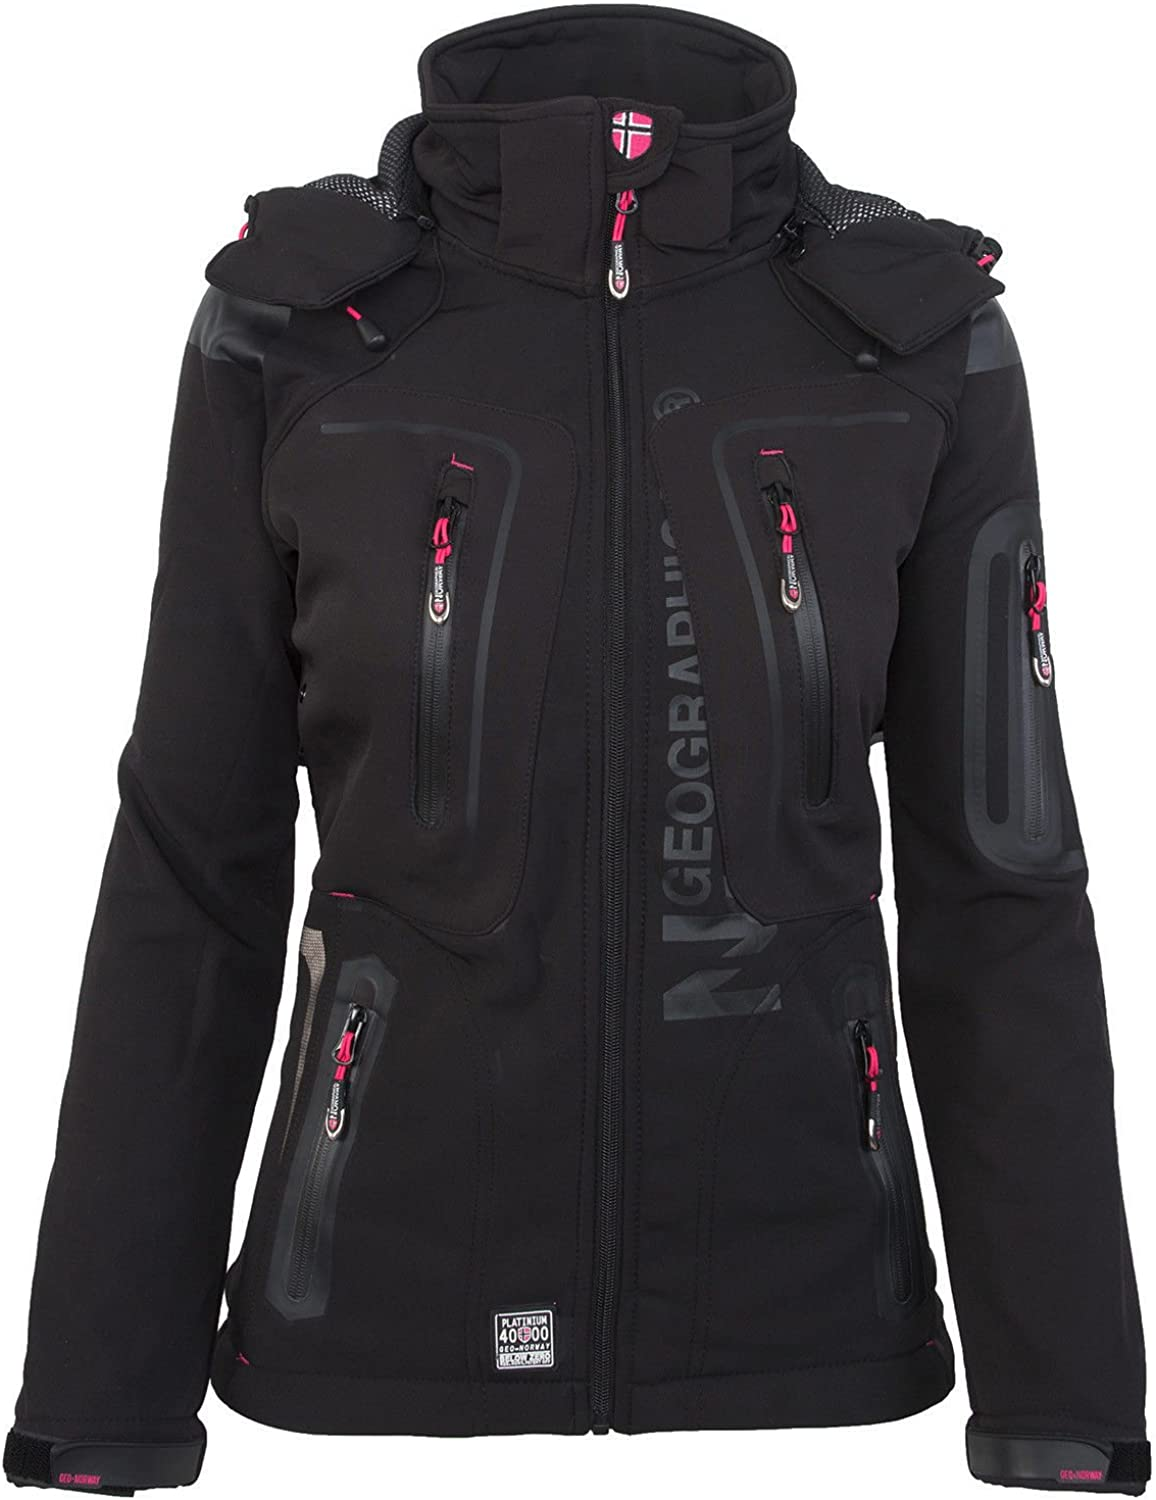 Geographical Norway-Chaqueta multifunción softshell impermeable para mujer negro X-Large